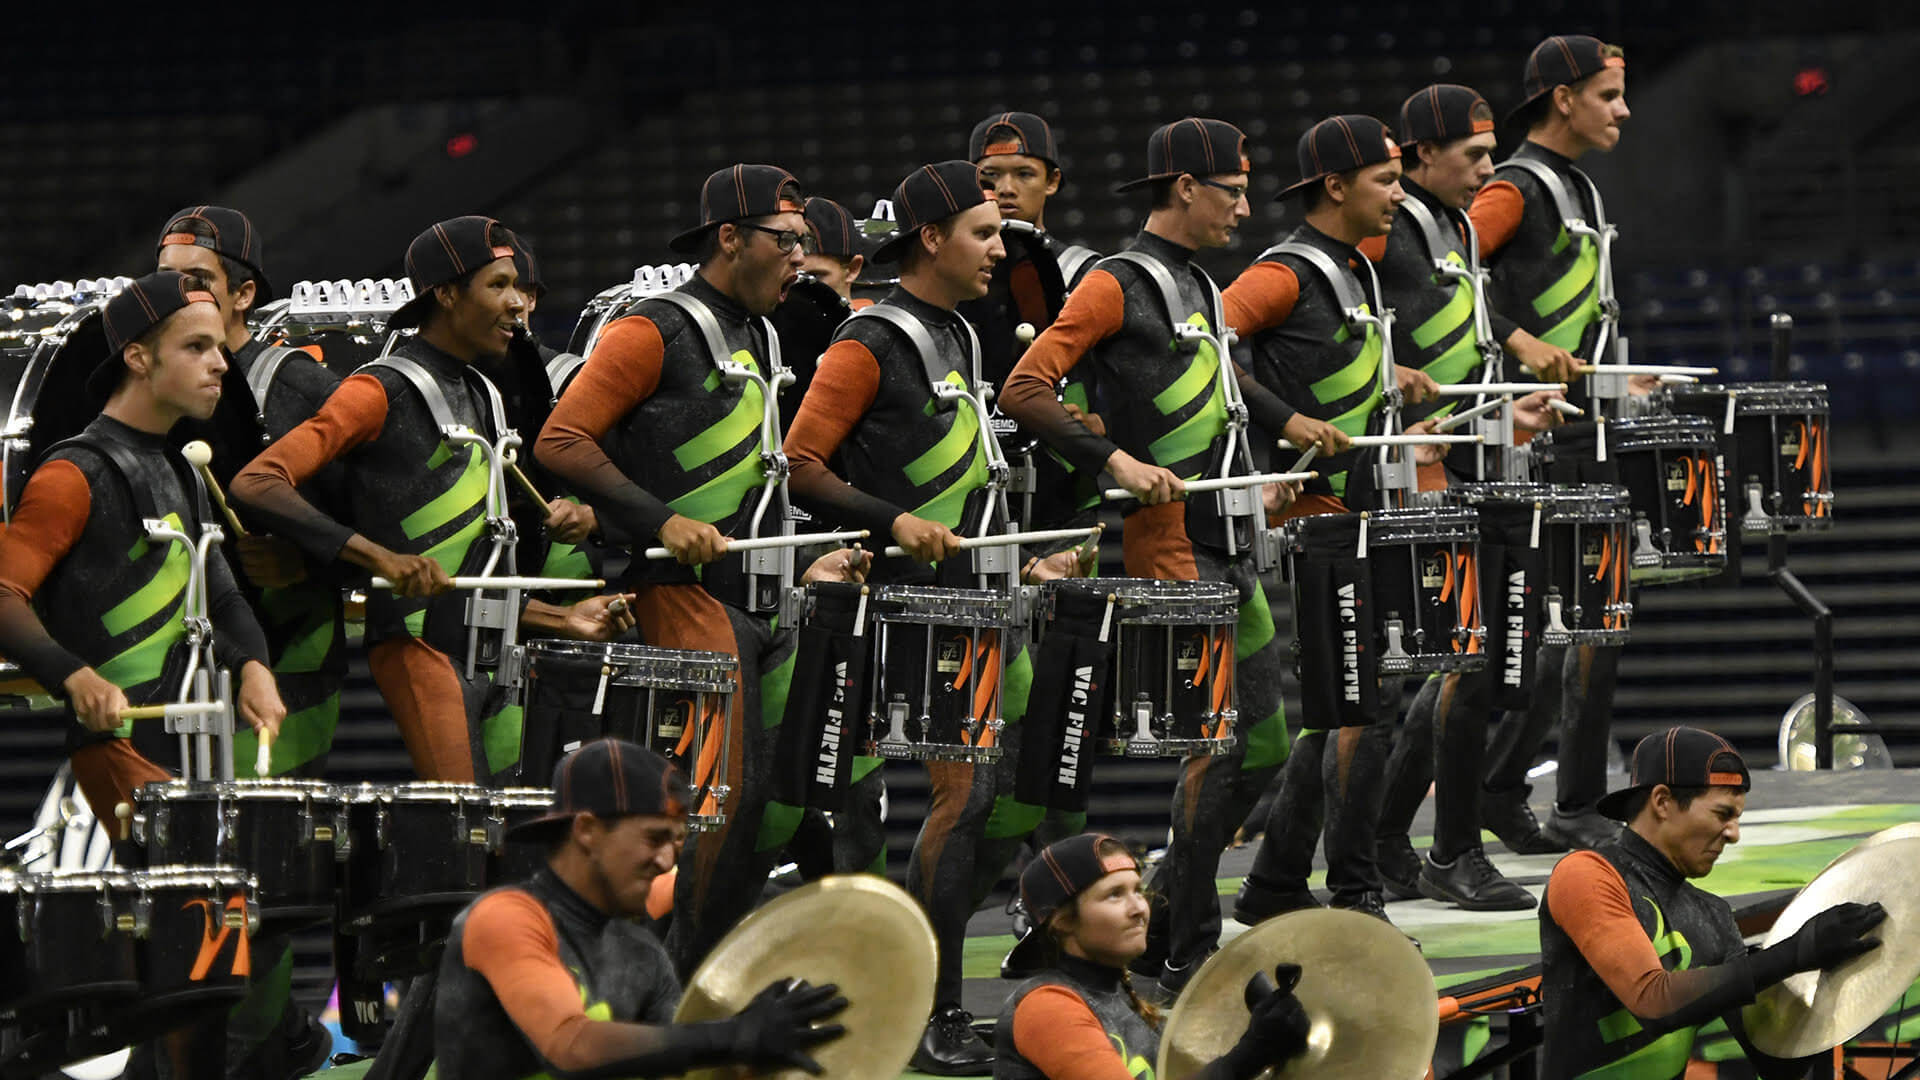 Road to Michigan City: Open Class corps set sights on Championships